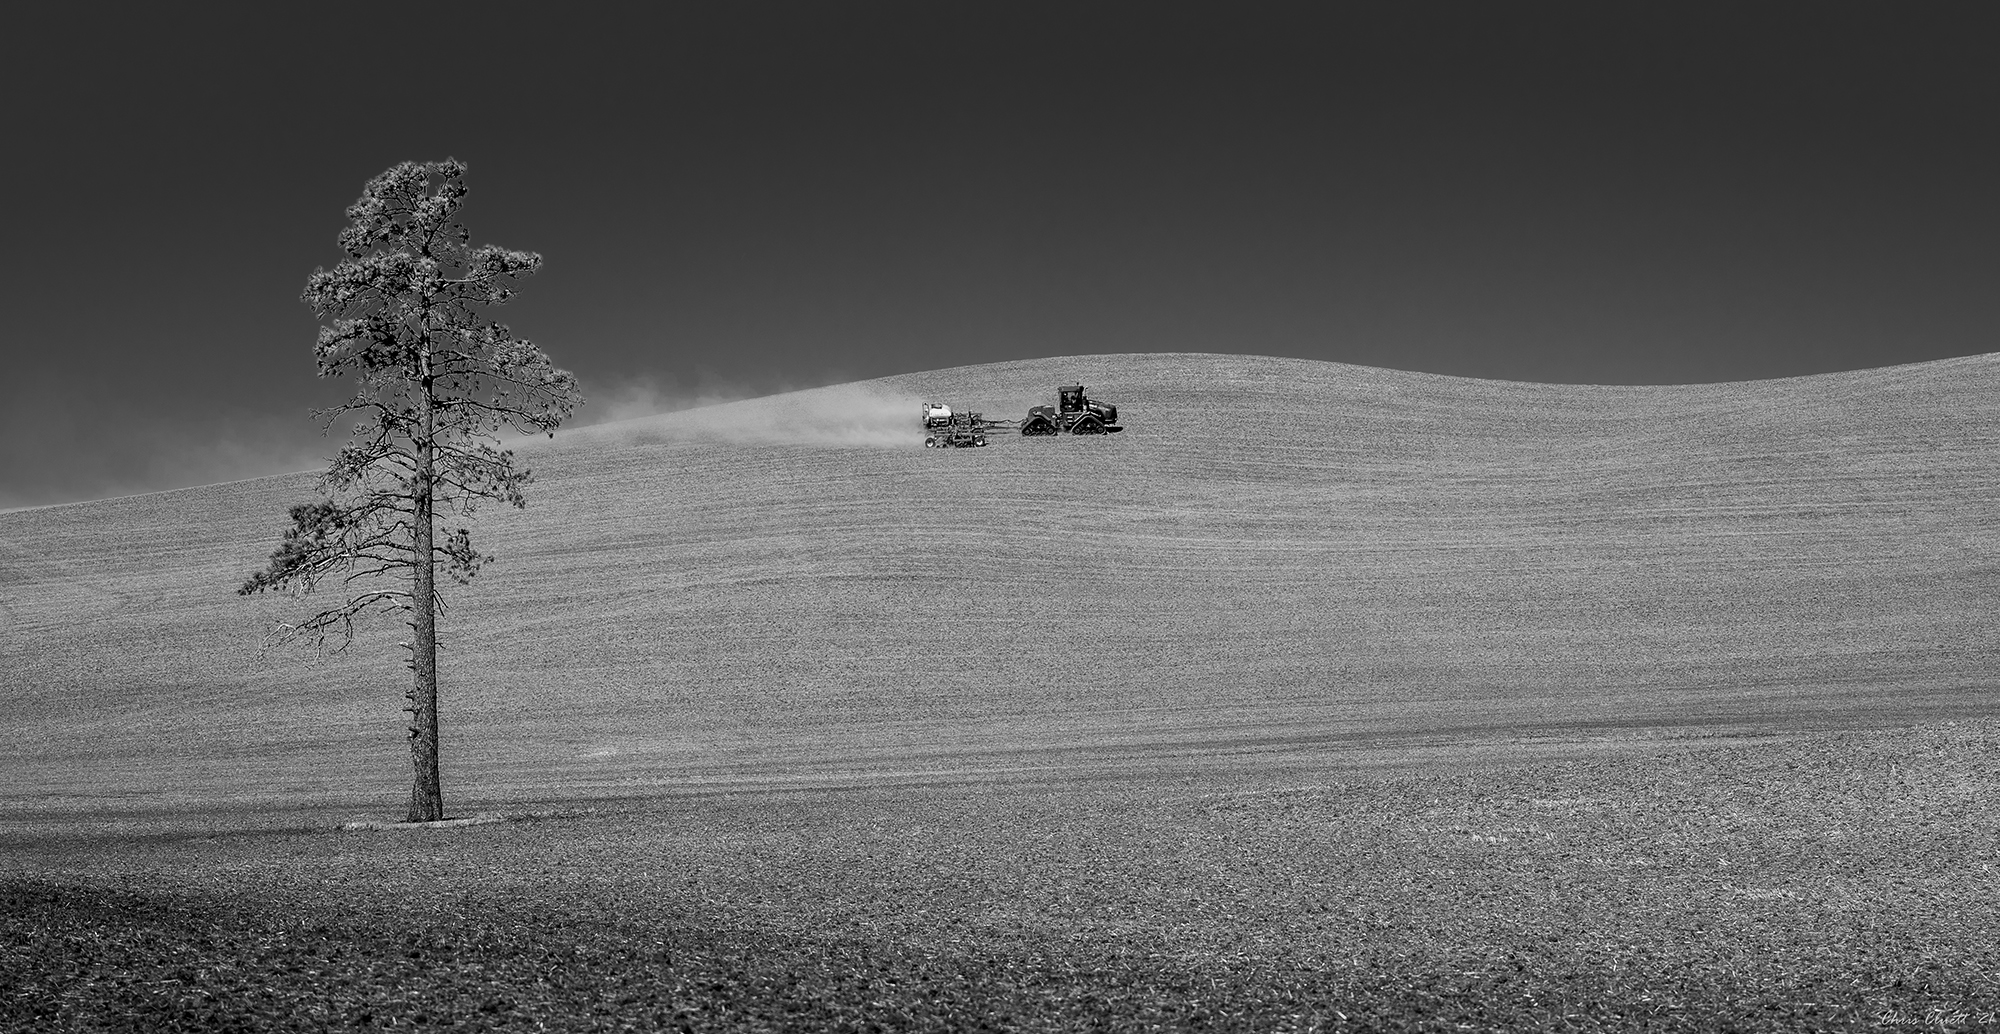 Alone in the endless rolling hills of the Palouse.